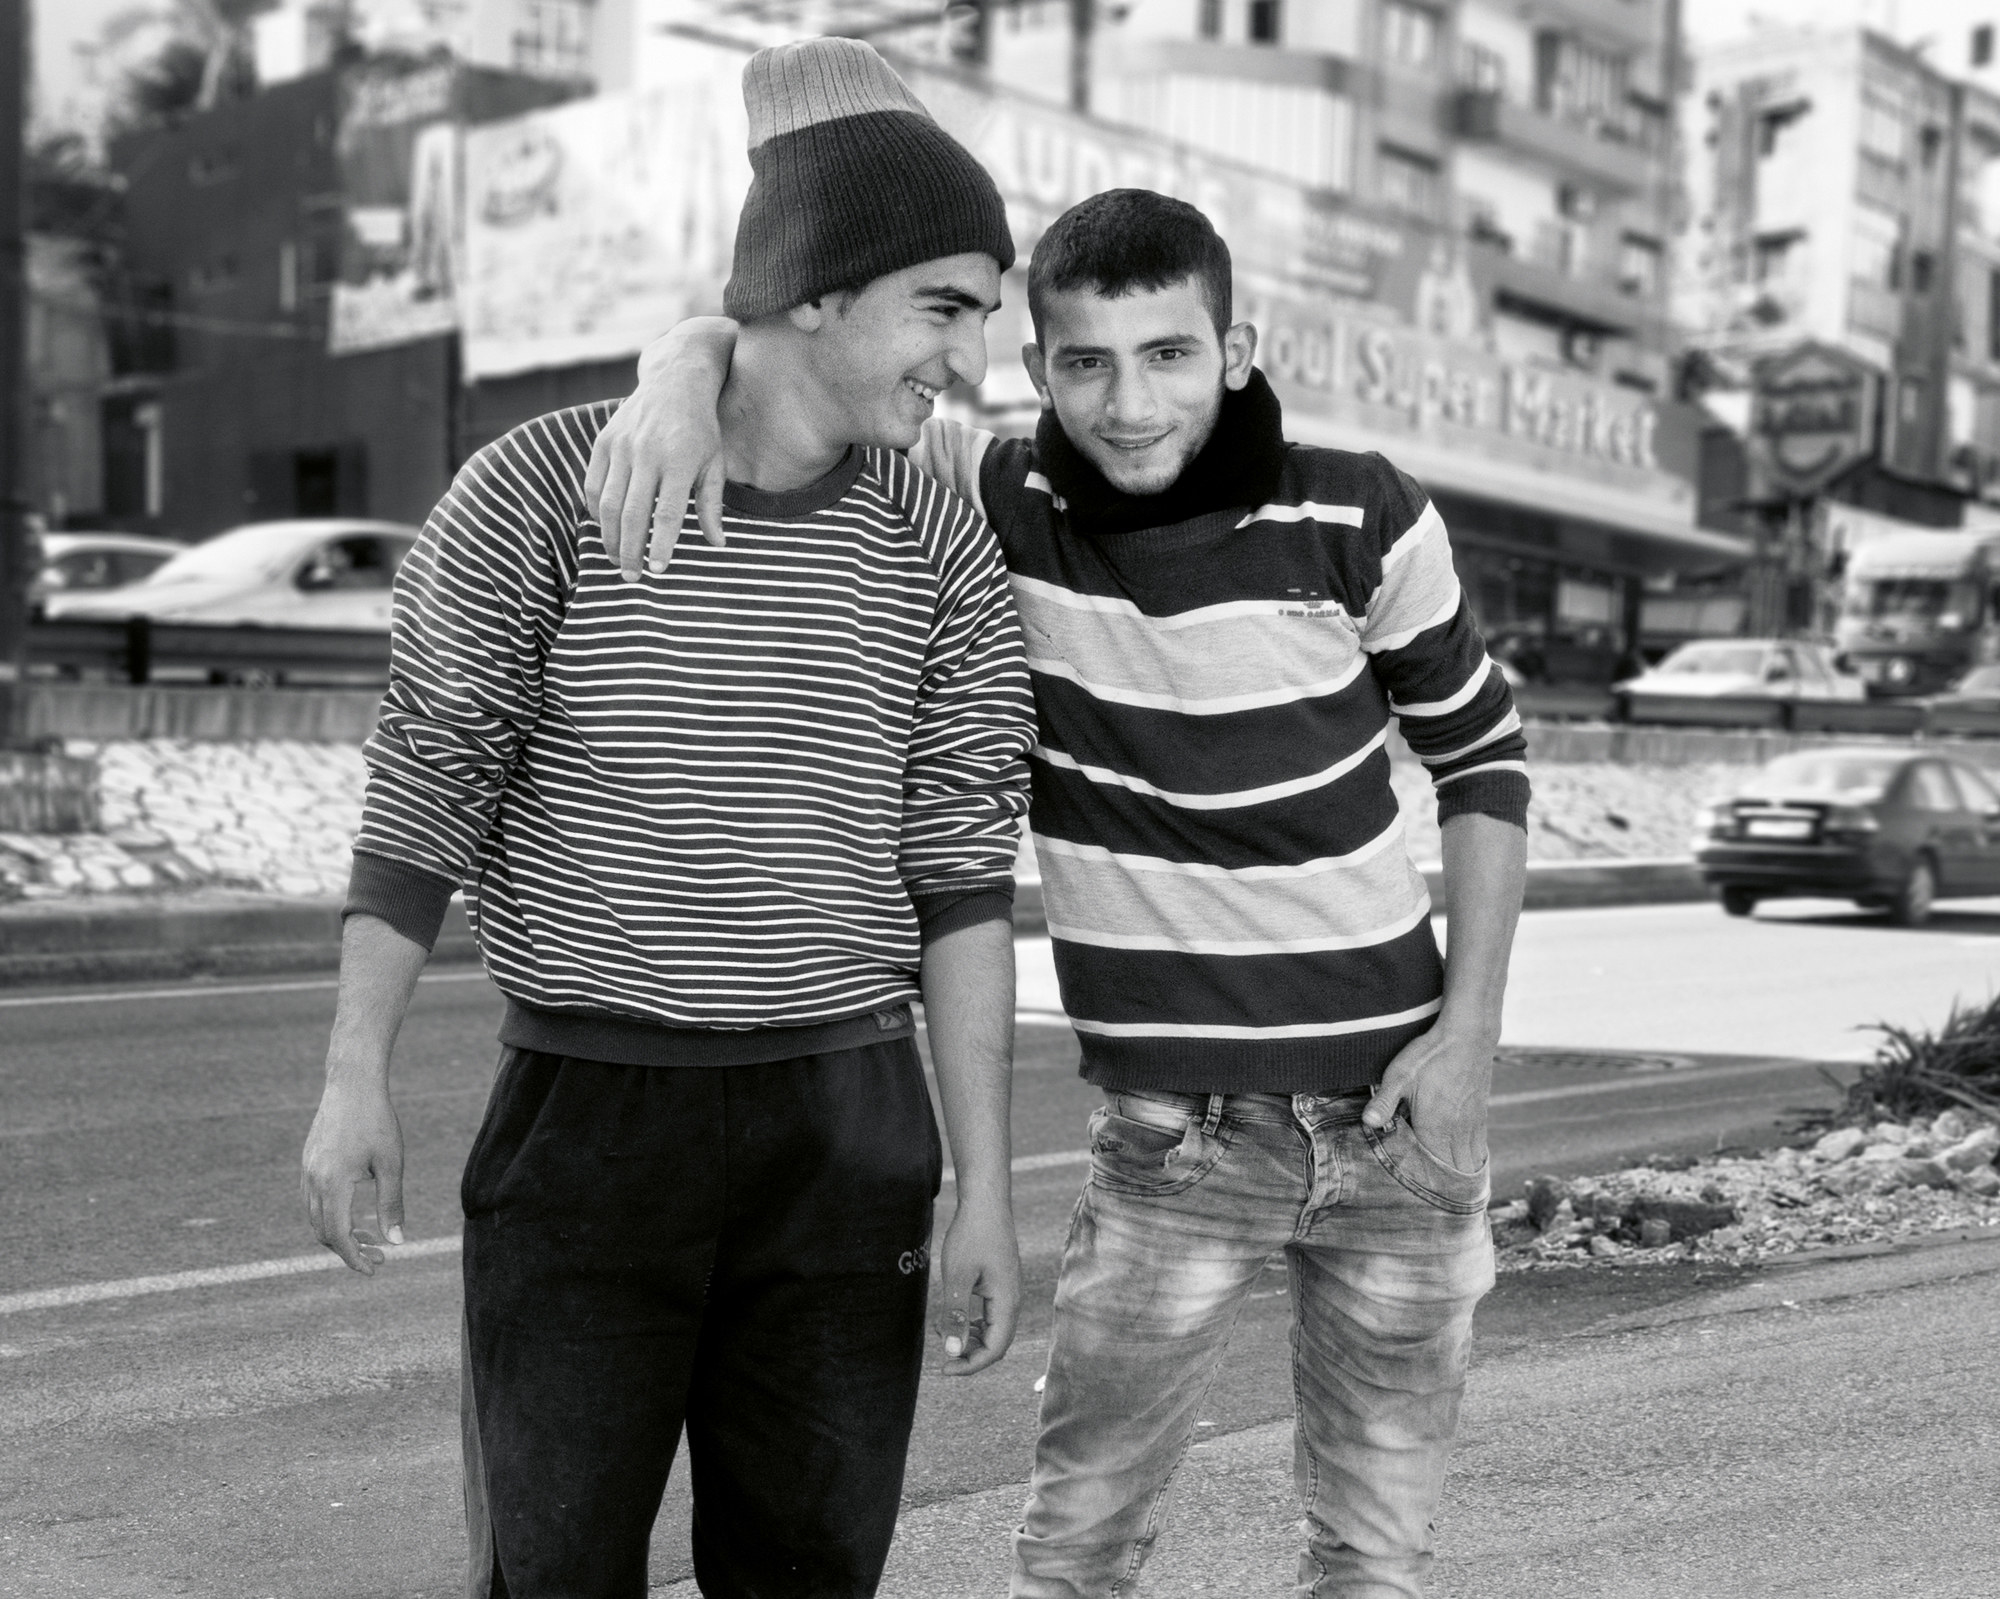 Two young men smile at each other and the photographer in Beirut